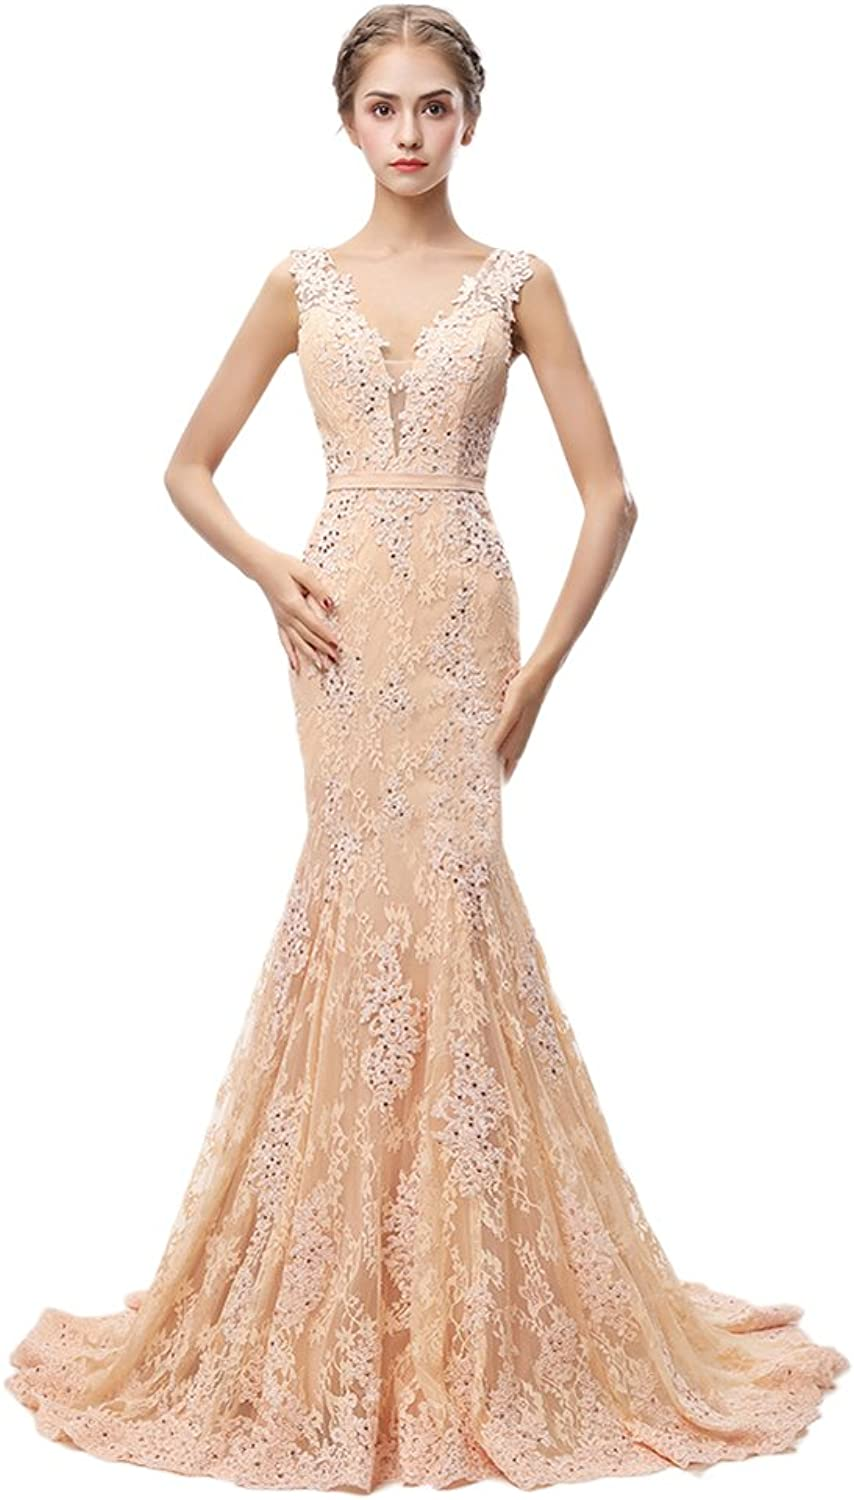 Yiweir Women's Long Sleeveless Champagne Deep V Neck Dress Lace Sequin Prom Gown